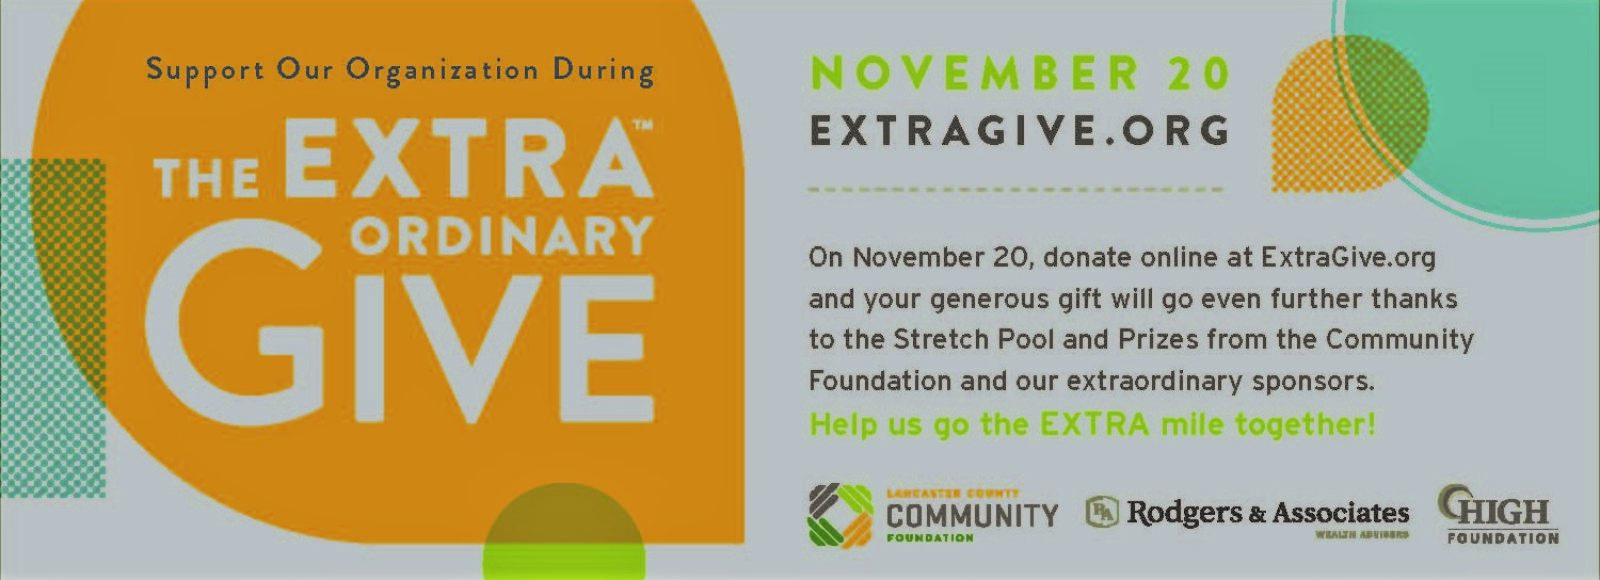 Our wonderful community contributes $30,000 during Extra Give!